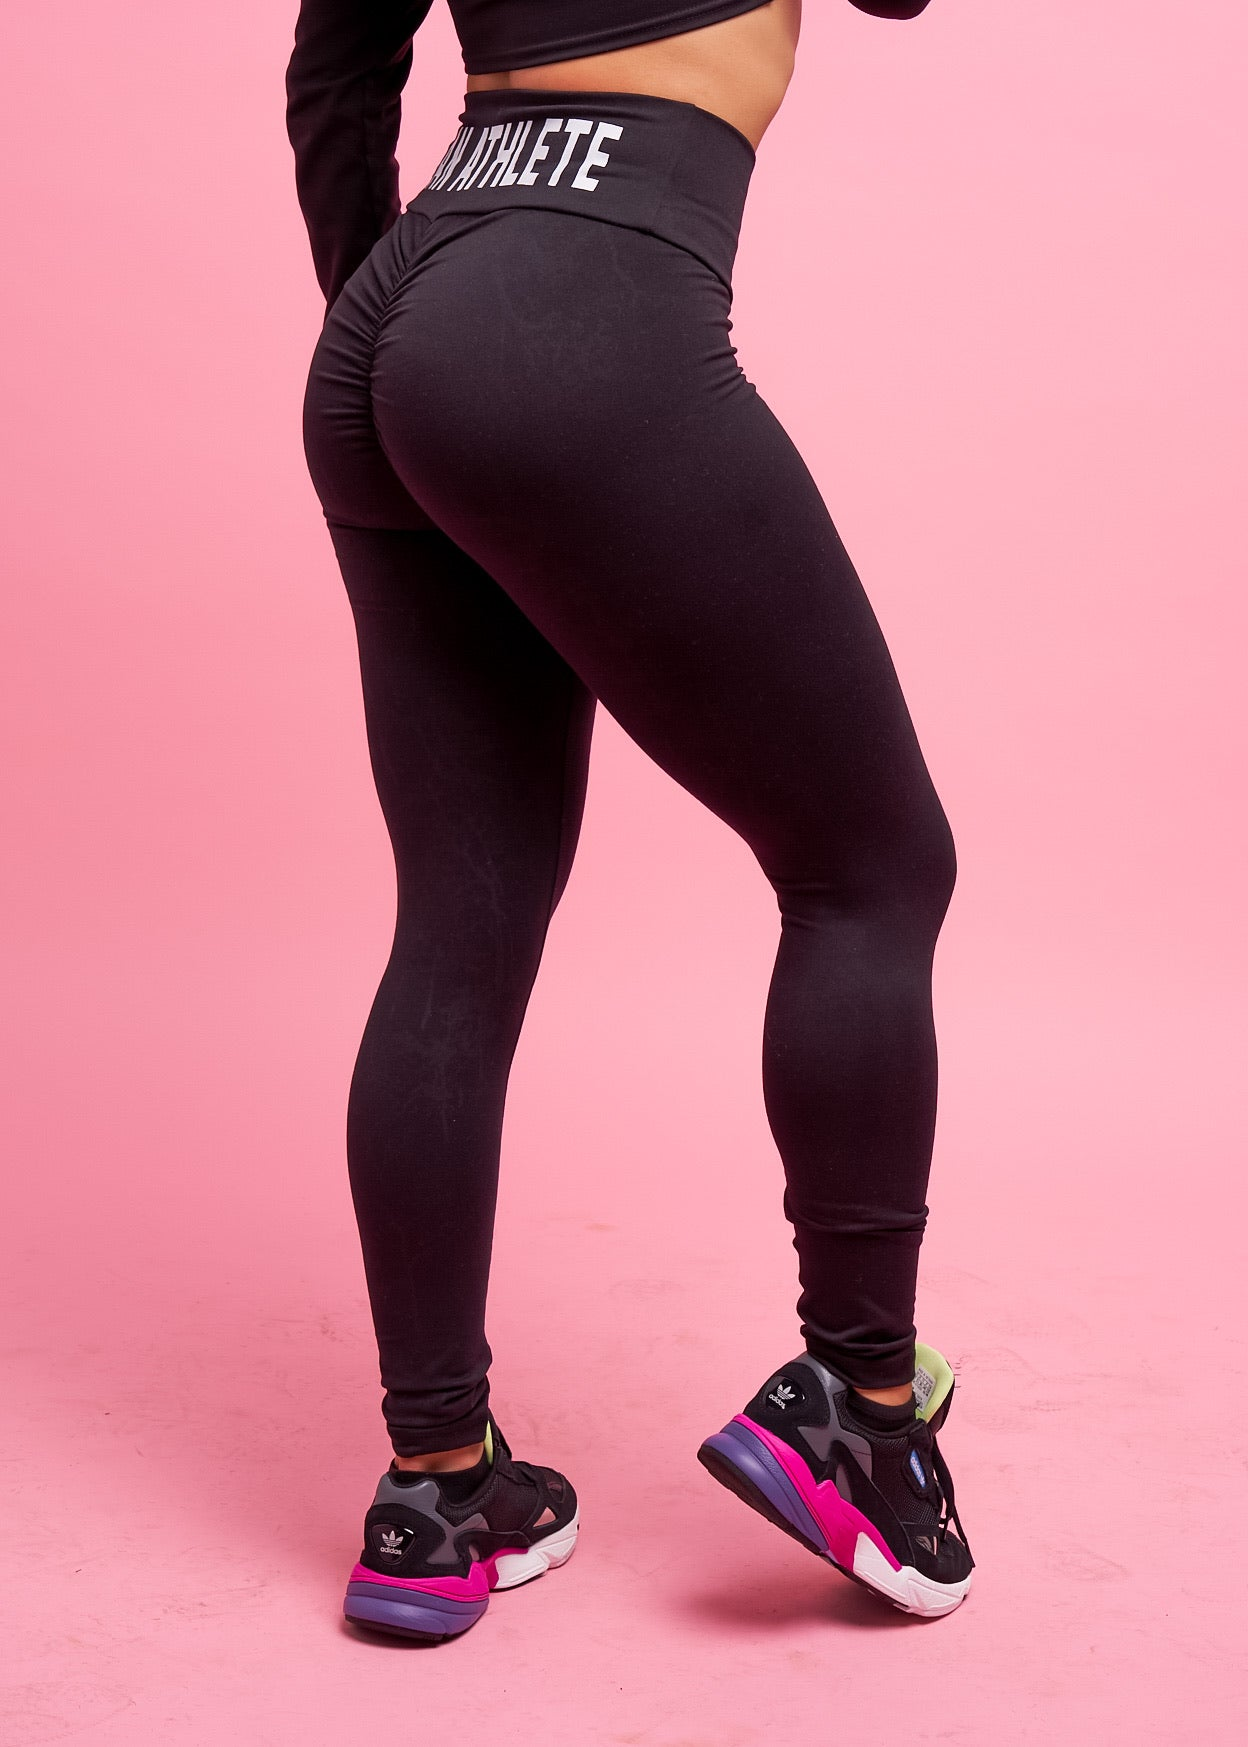 Vegan Athlete Scrunch Leggings